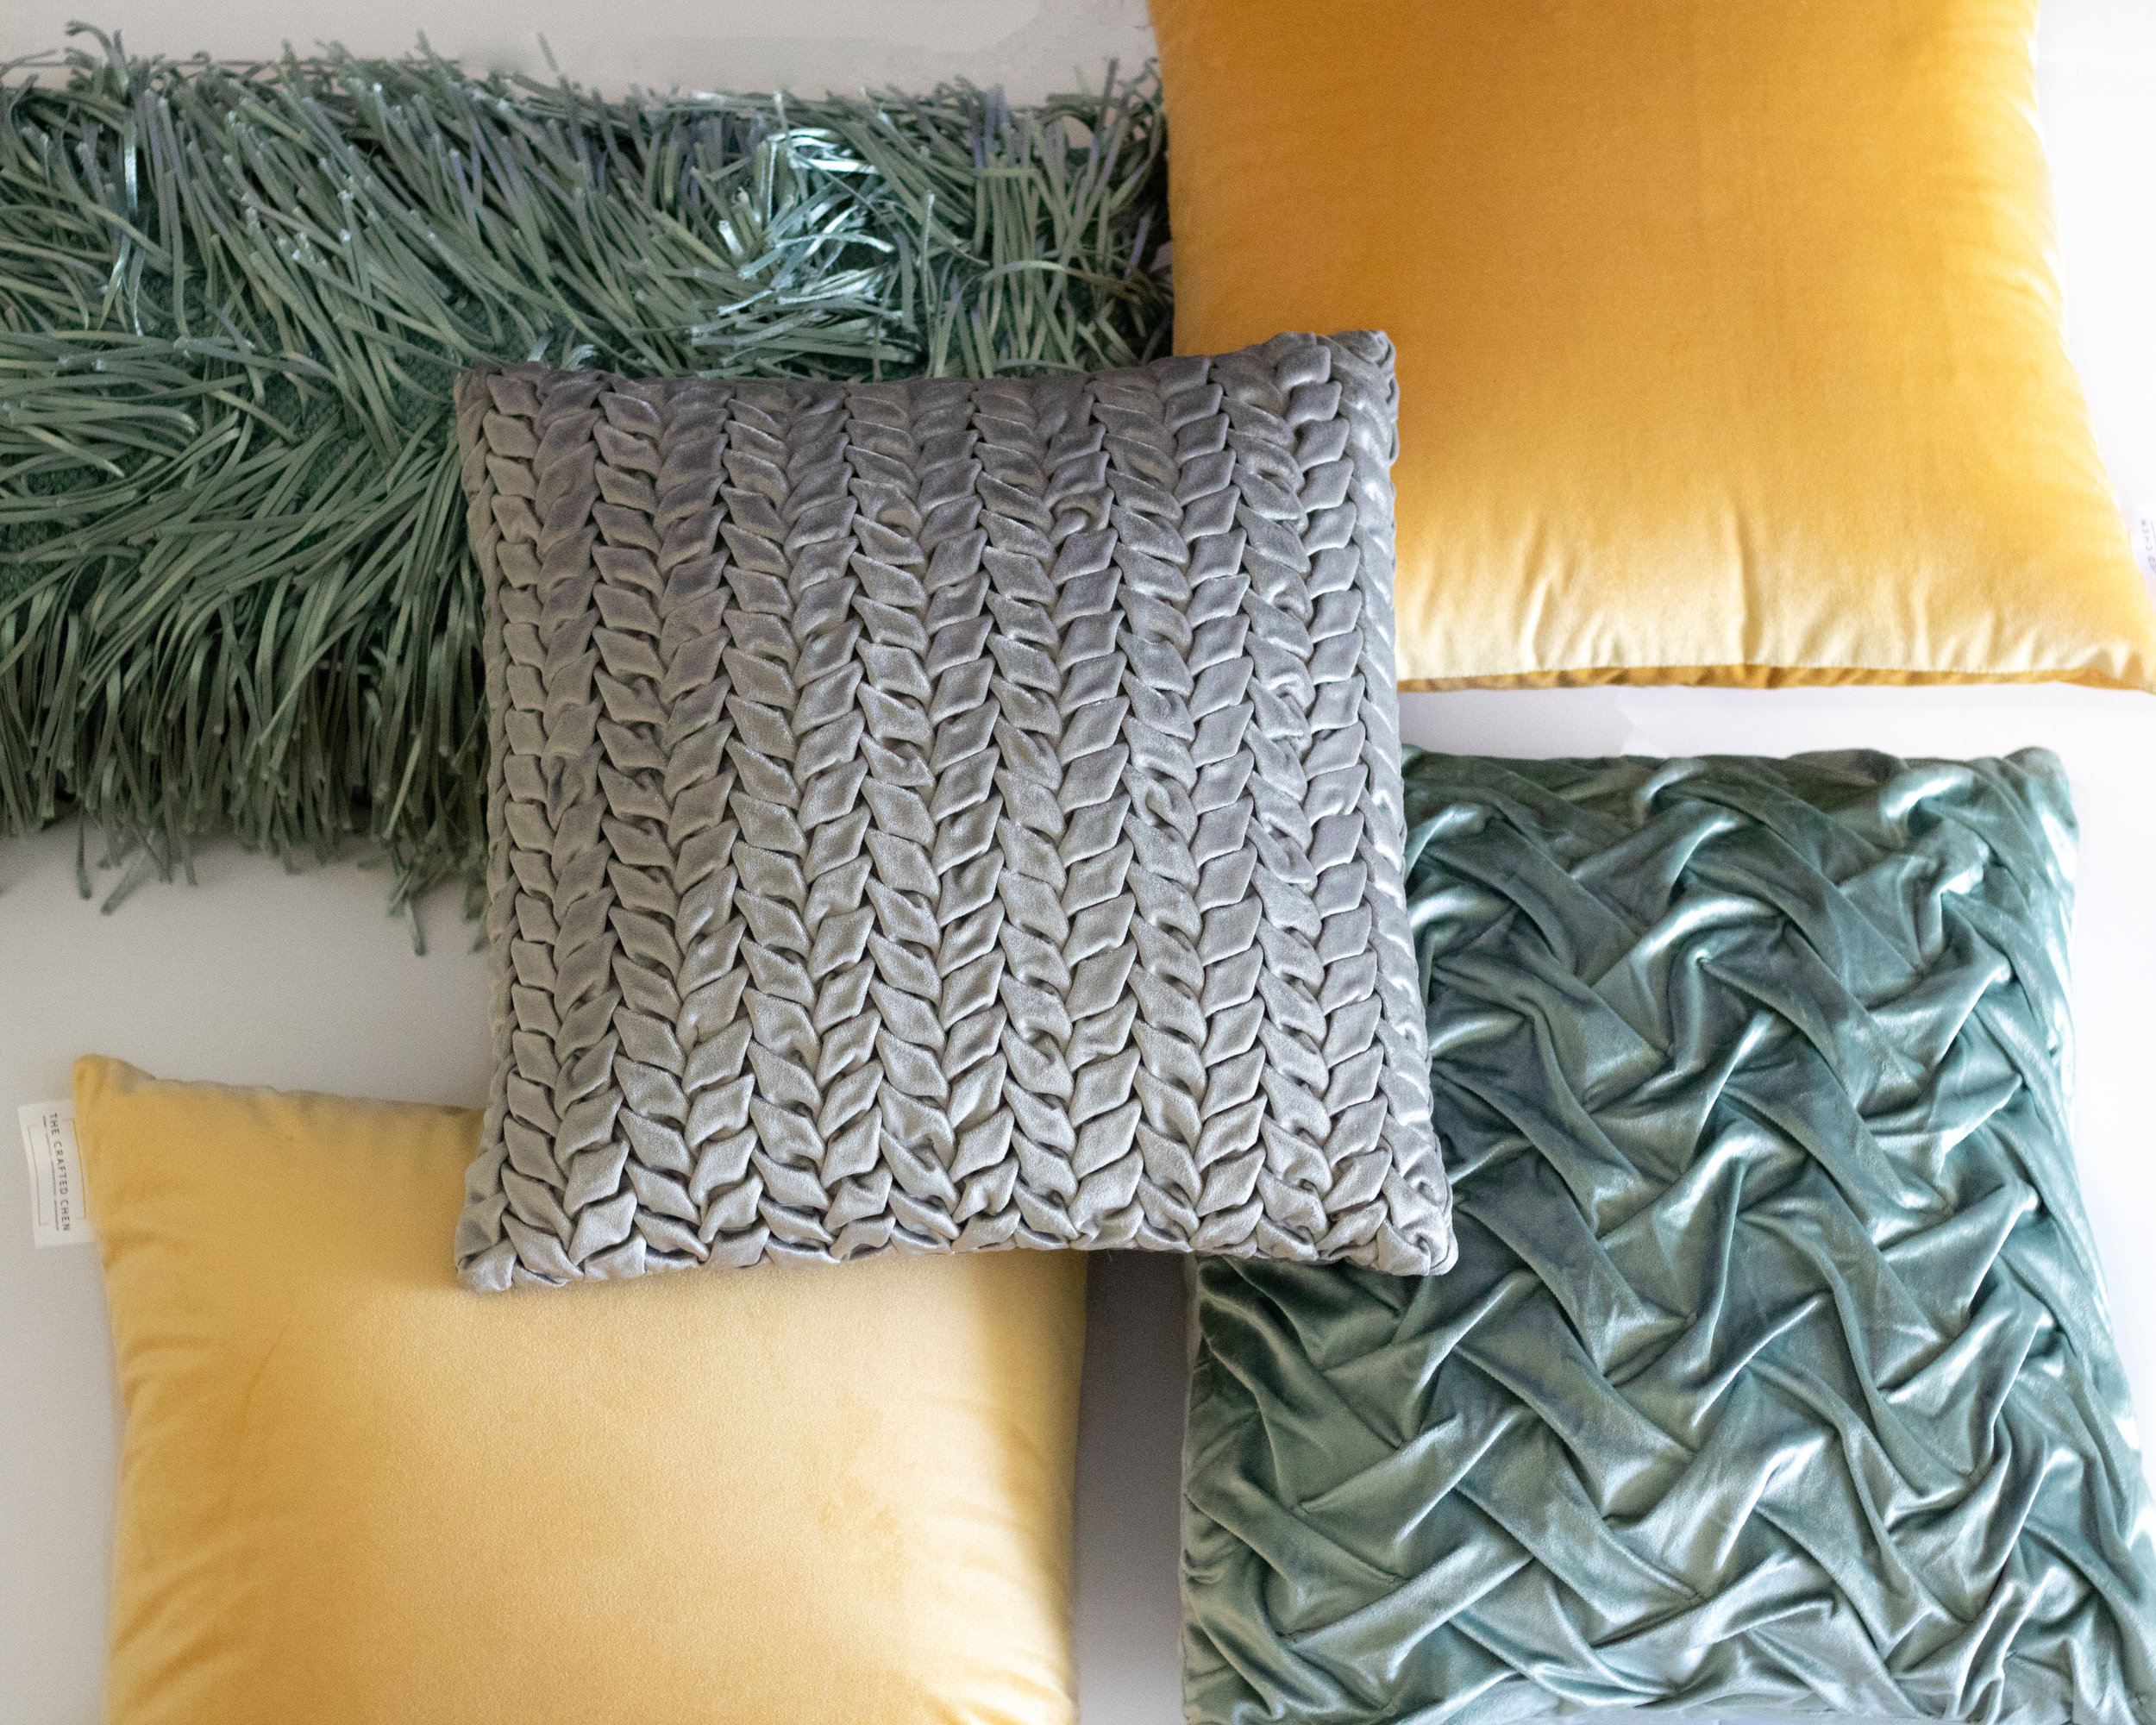 CRAFTED SHOP - Decorative Pillows, Textured Accents, Confetti Glassware and more all available now.